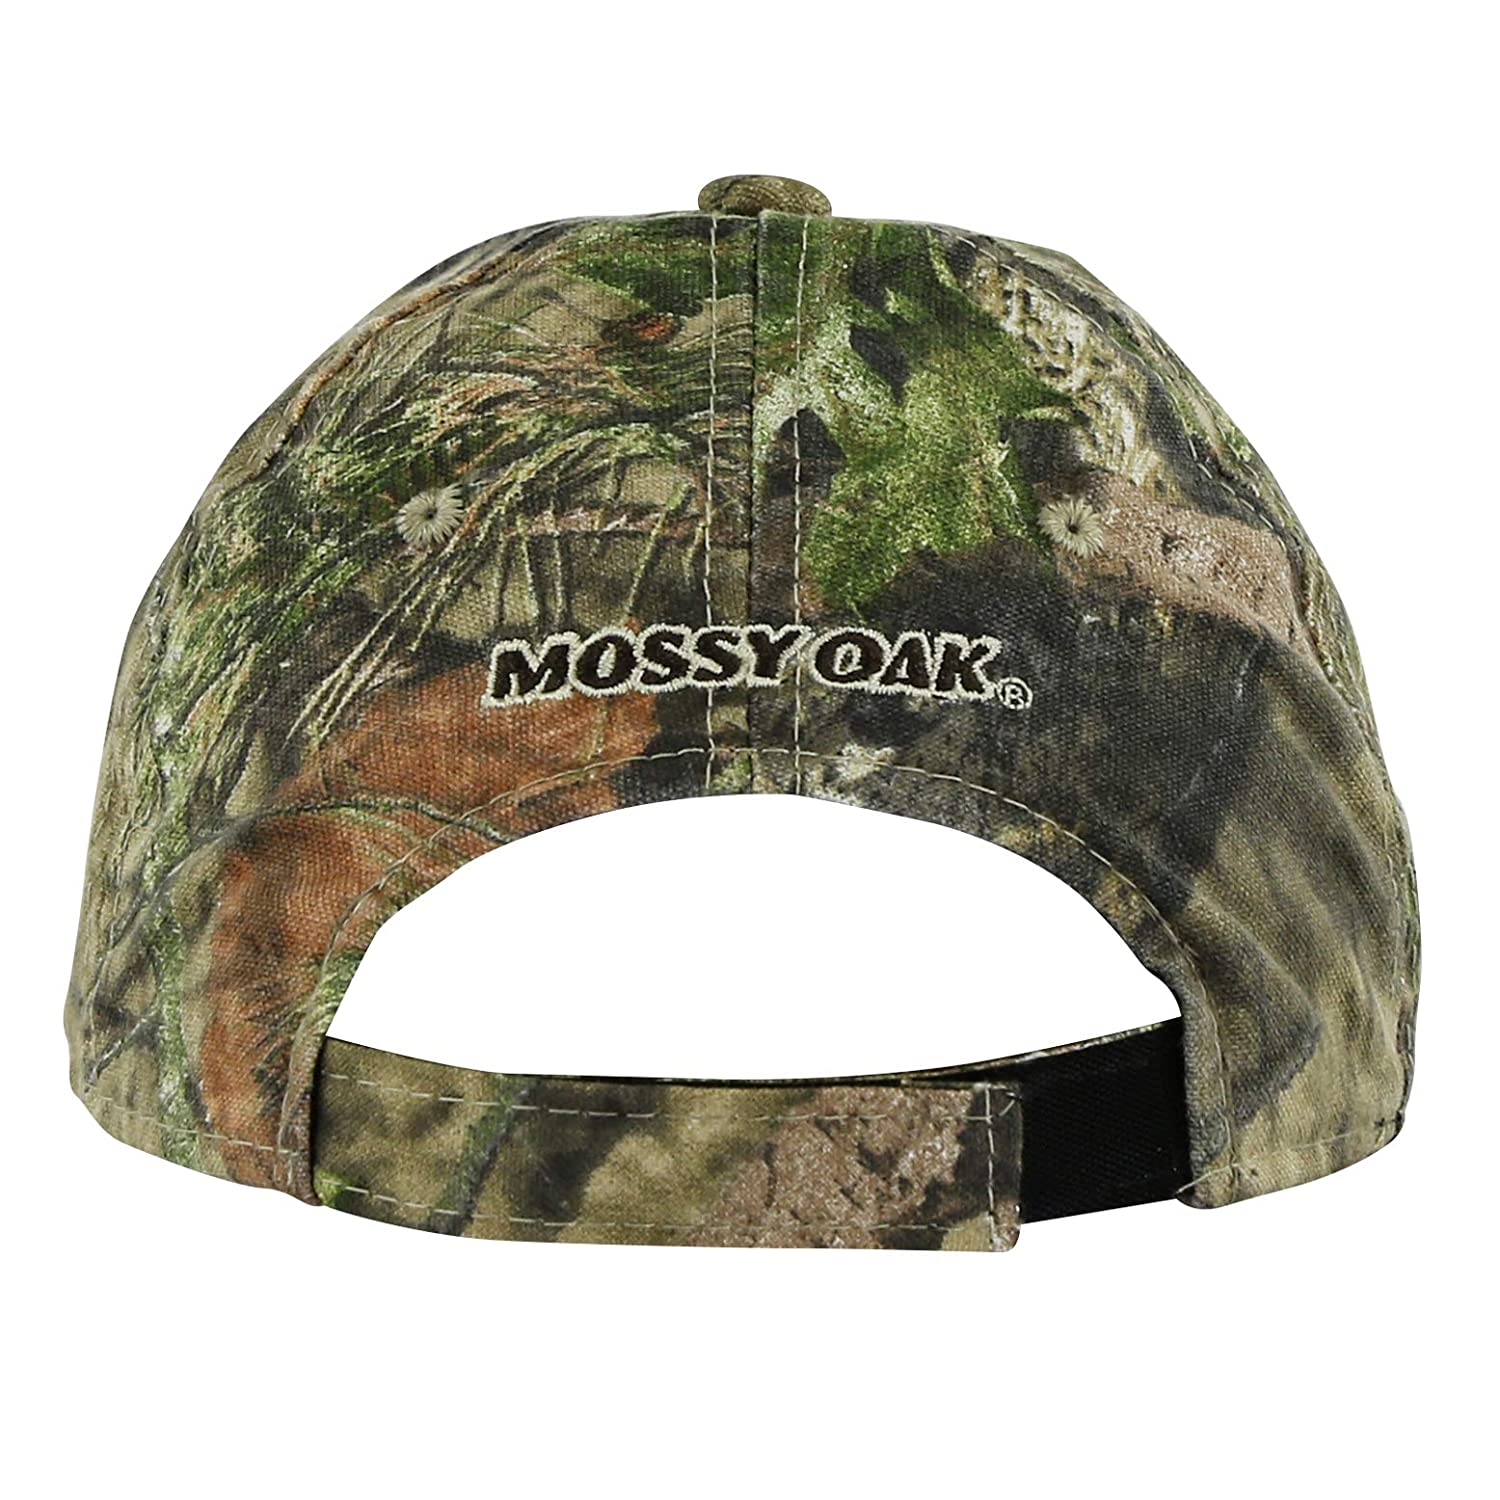 Mossy Oak Youth Full Camouflage Contrast Stitched Logo Cap in Multiple Camo Patterns